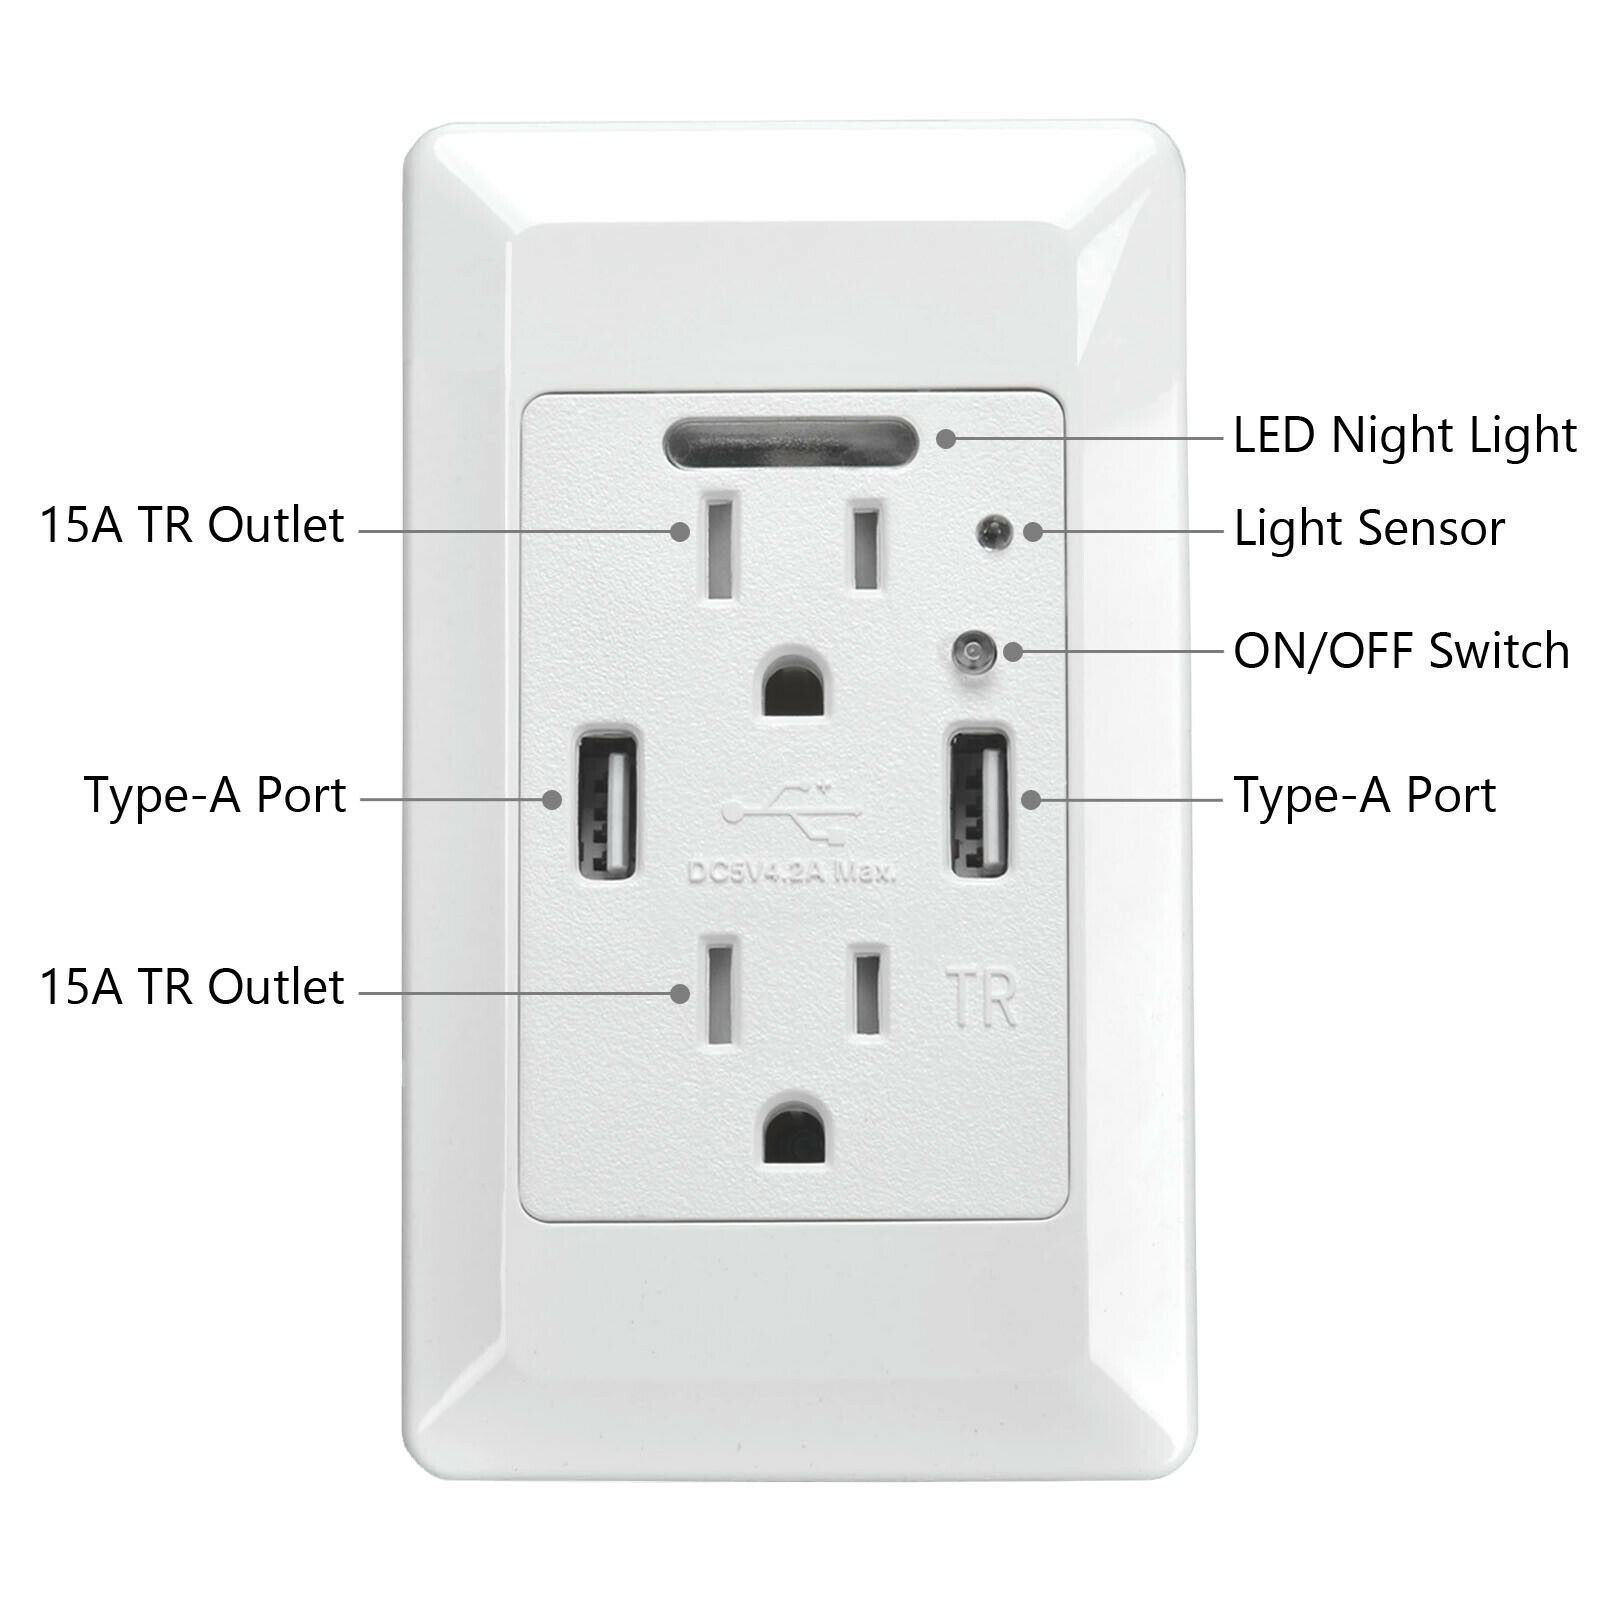 4pk Outlet Wall Plate With Led Night Lights Fast Charging W Dual Usb Ports 4 2a 606462410946 Ebay